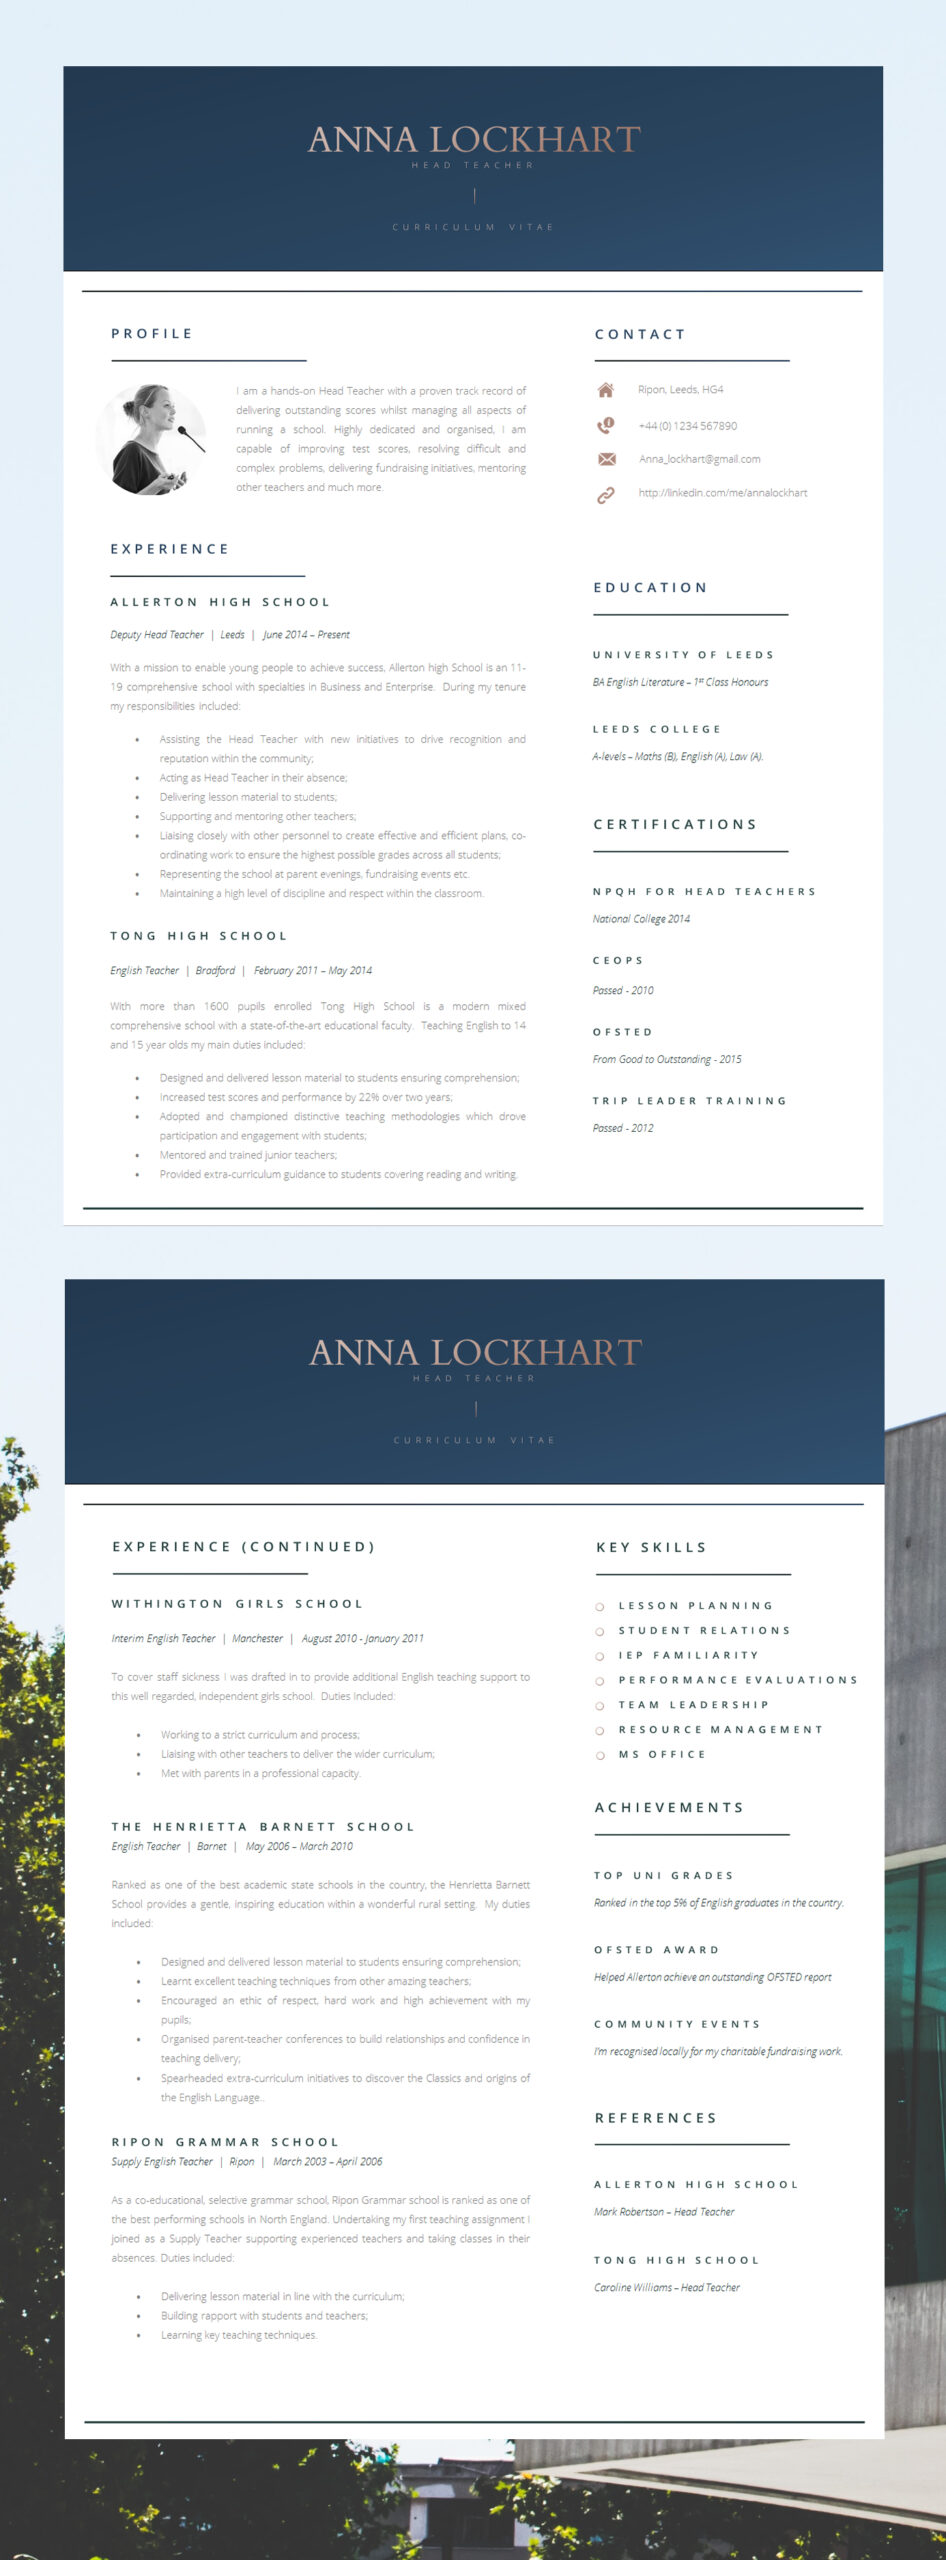 modern resume templates guru job search inspiration template examples disaster recovery Resume Modern Resume Template Examples